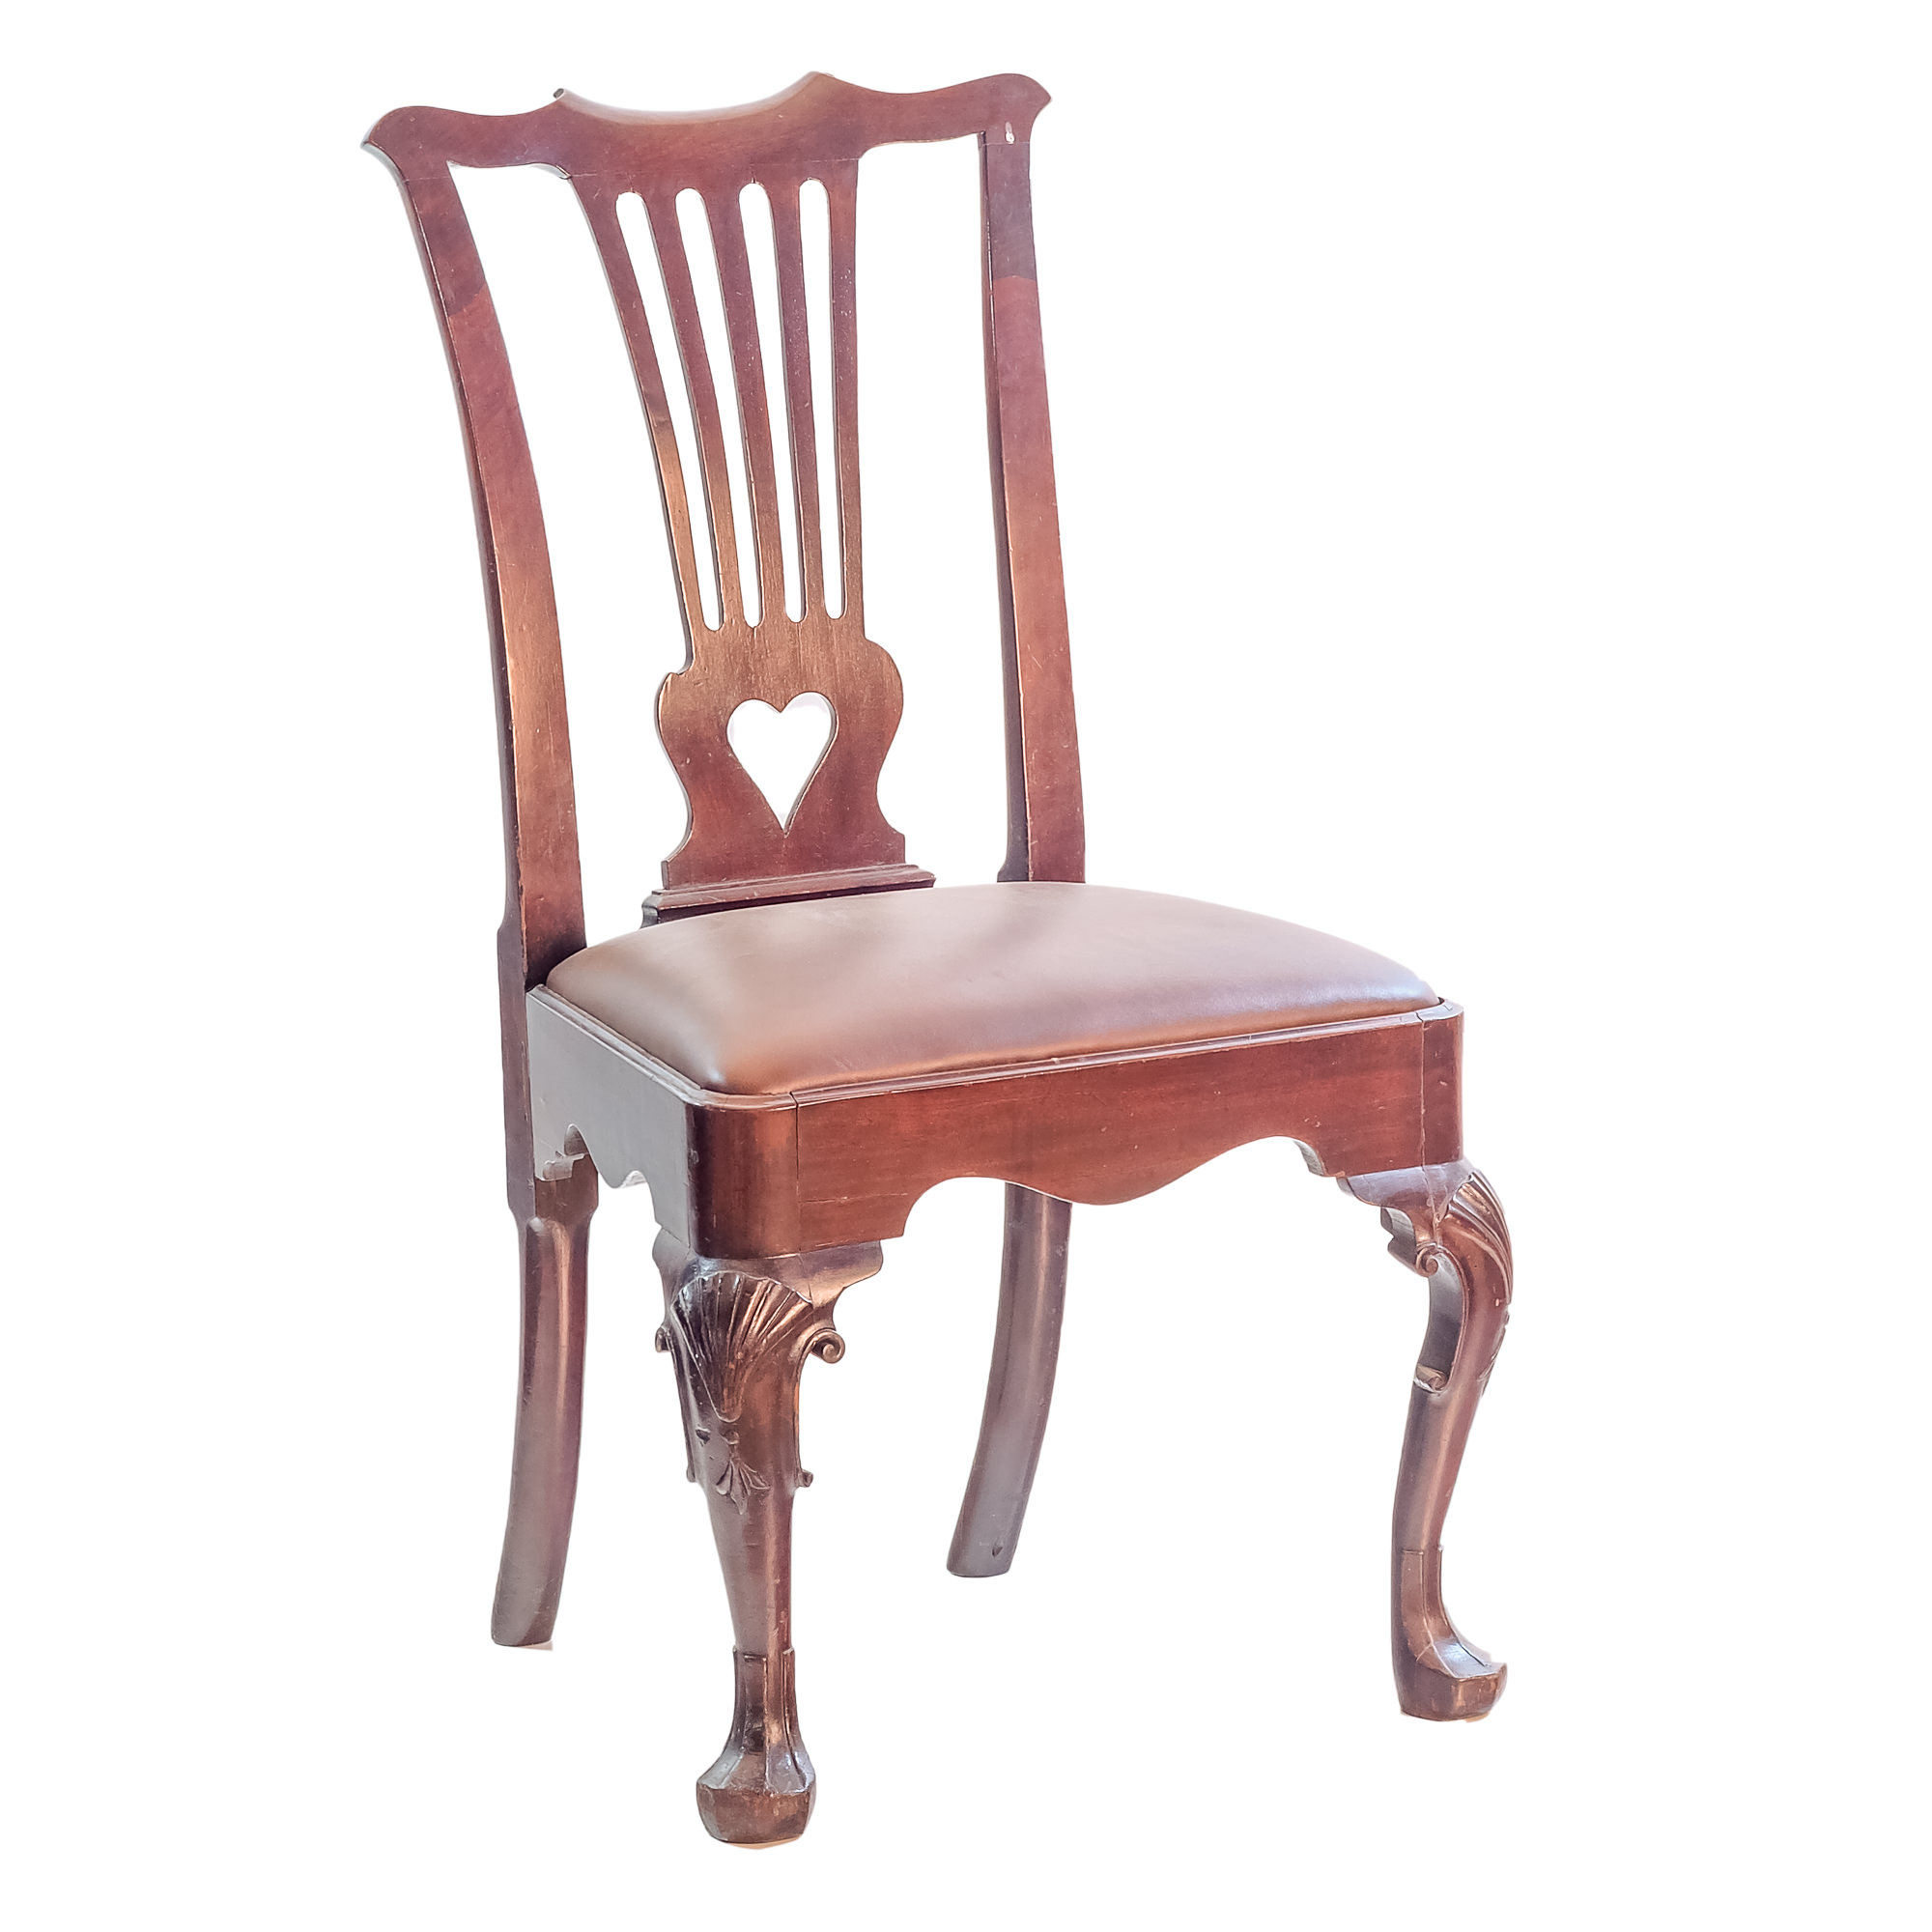 '18th Century Irish Chippendale Mahogany Side Chair with Shell Motifs to Knees and Trefid Feet'